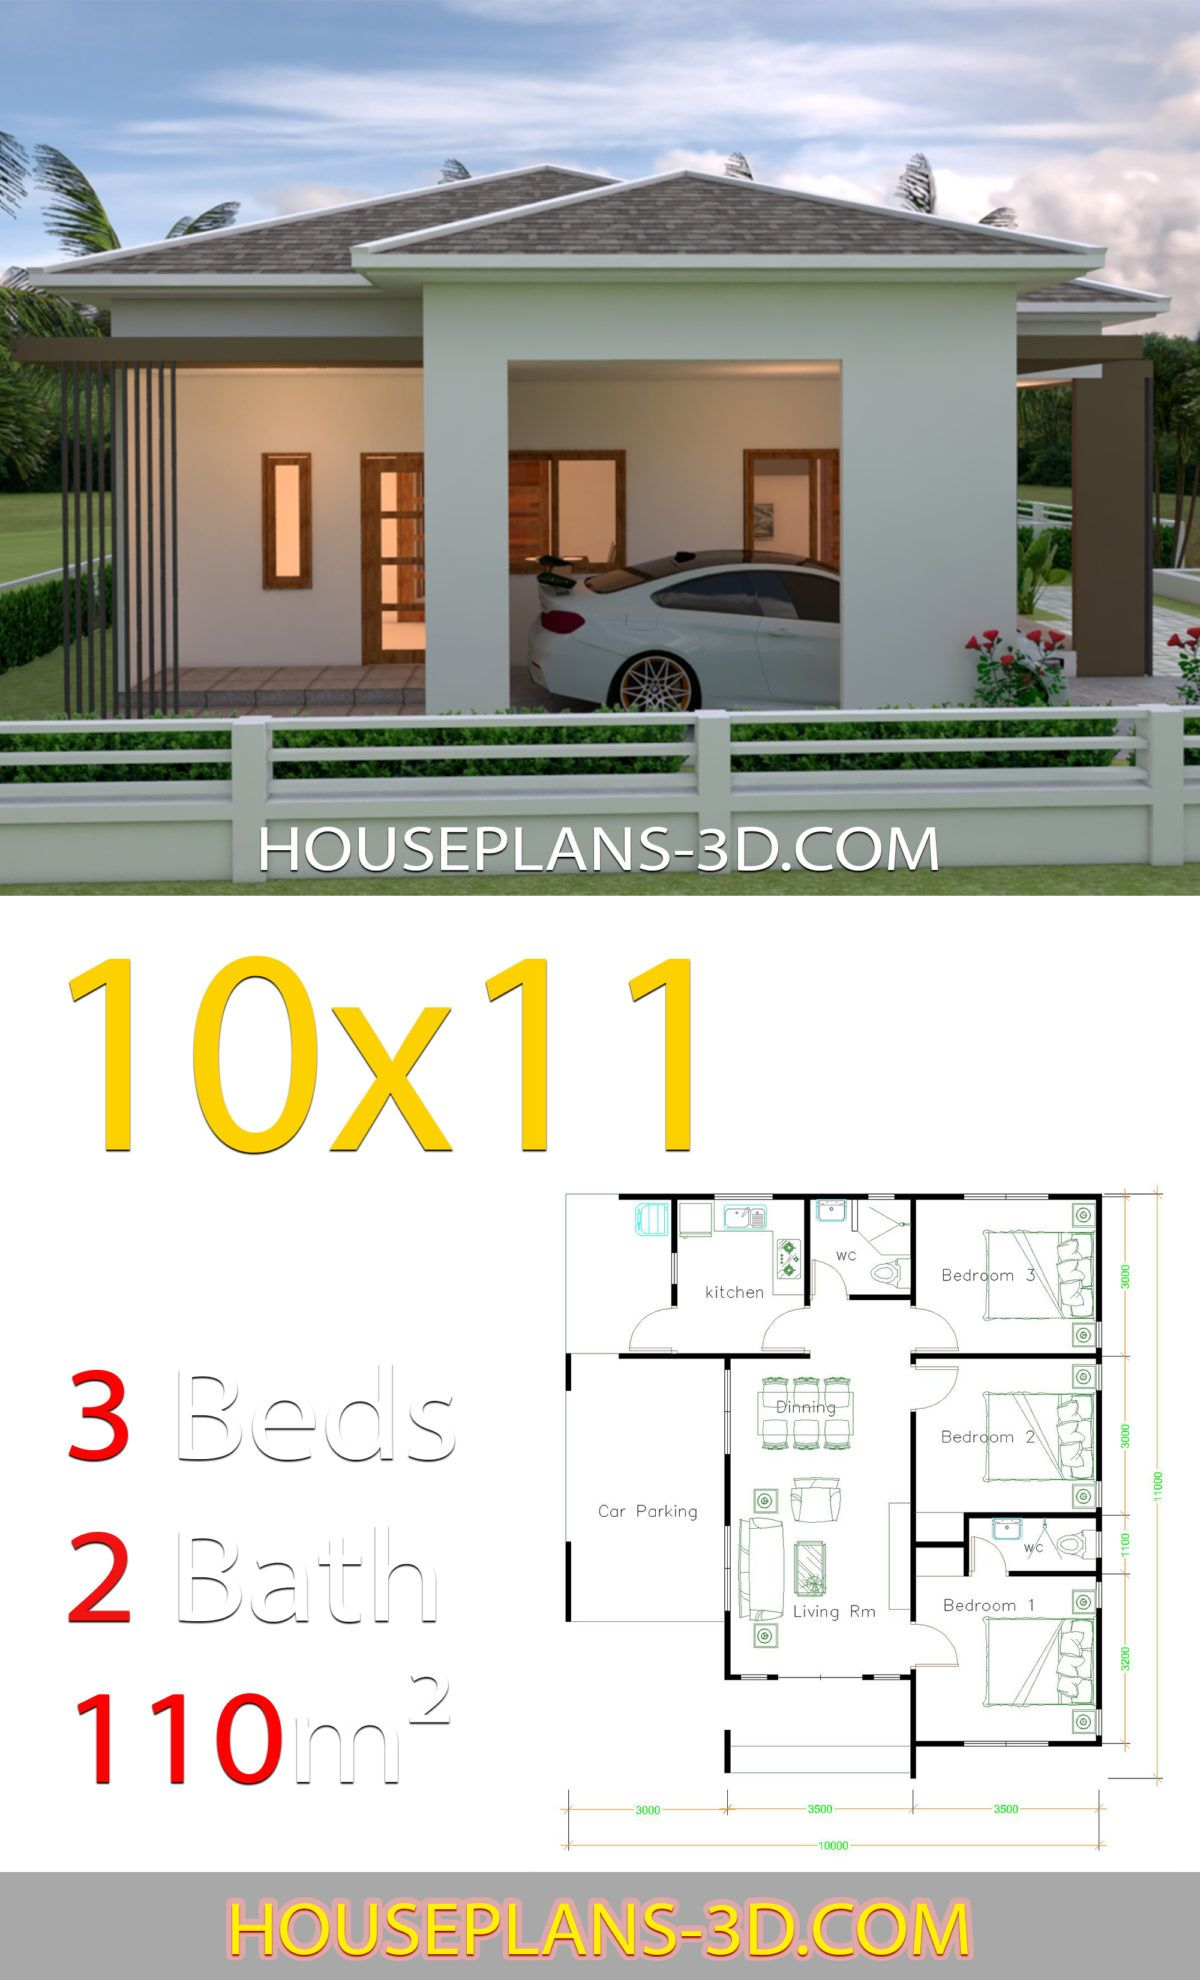 House Design 10x11 With 3 Bedrooms Hip Tiles House Plans 3d In 2020 House Plans Small House Design Plans House Roof